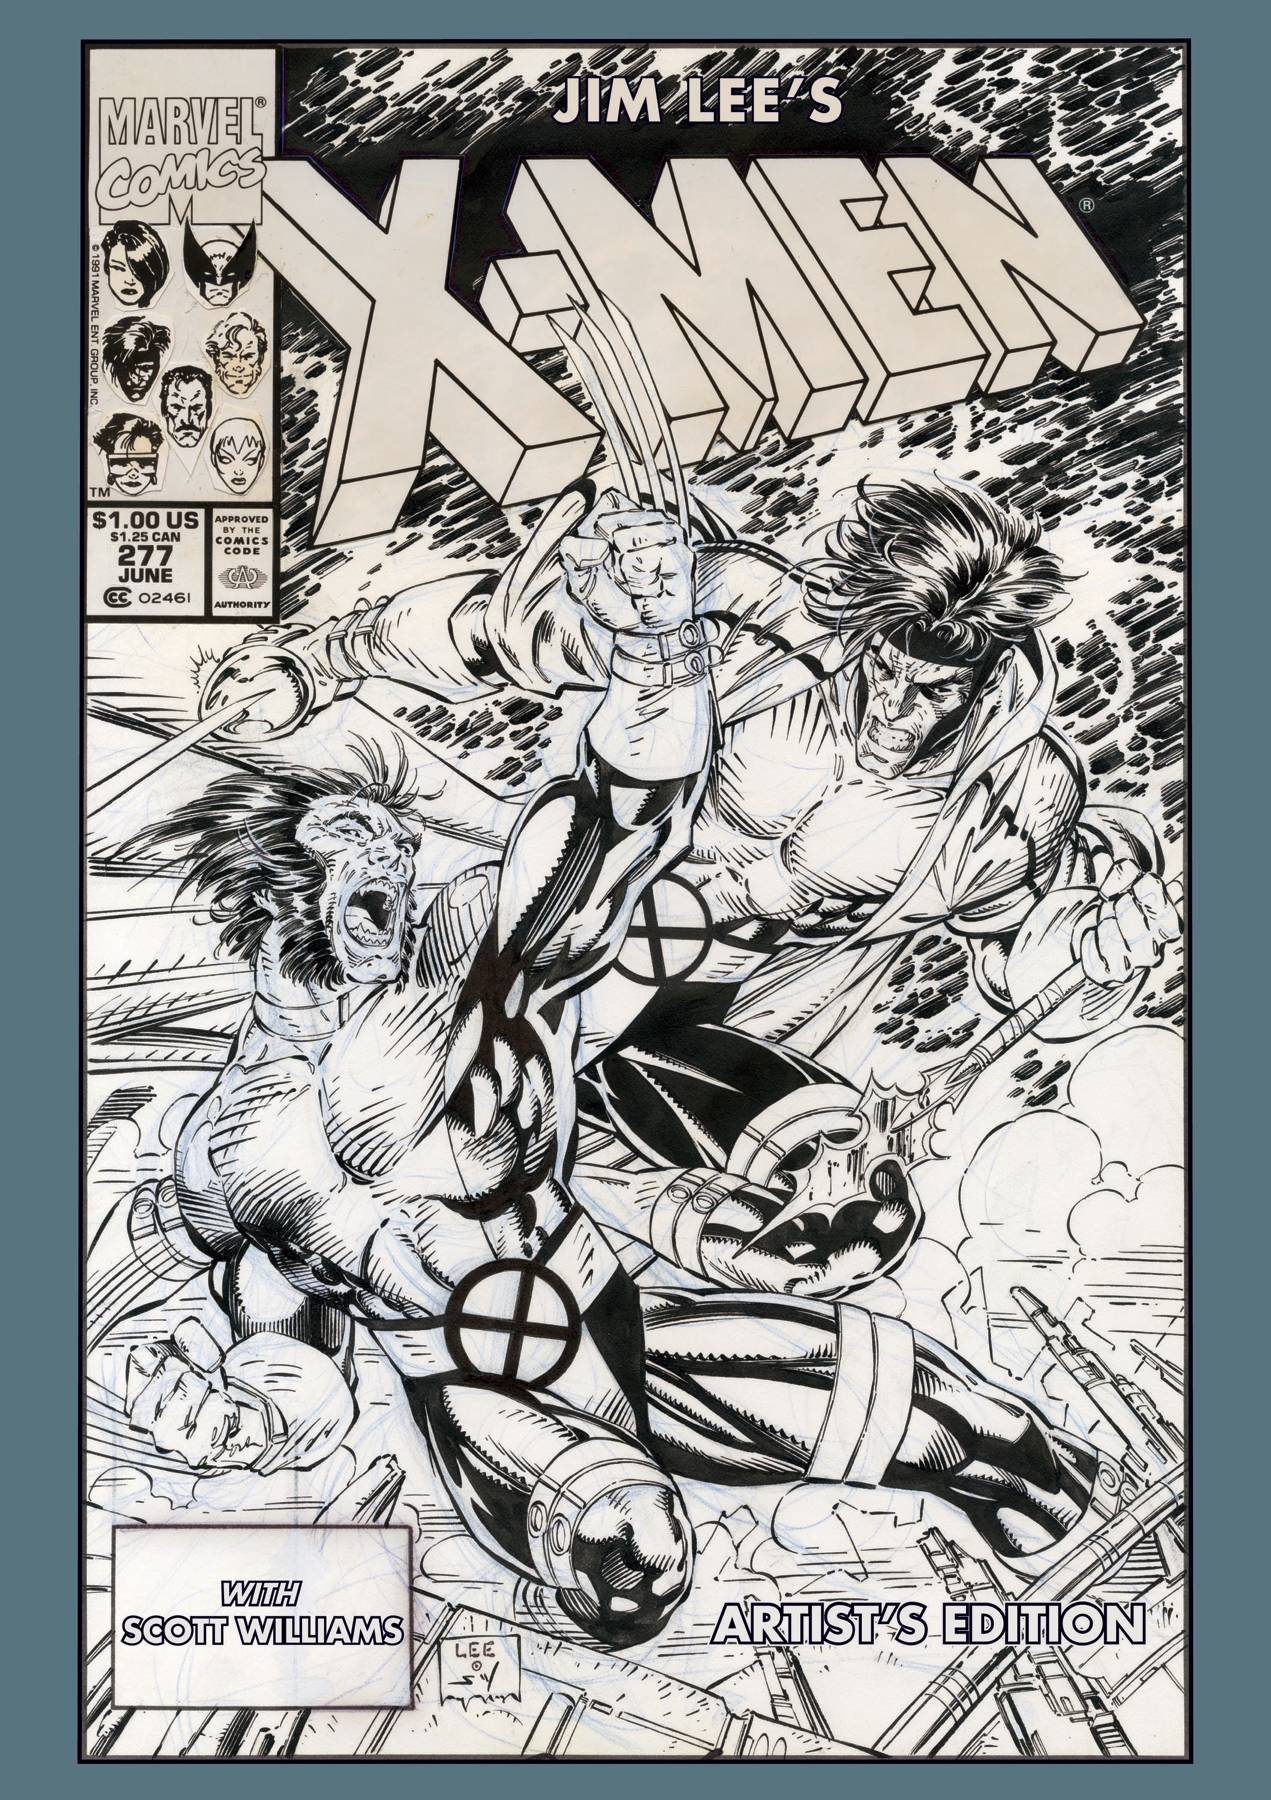 JIM LEES X-MEN ARTIST ED HC